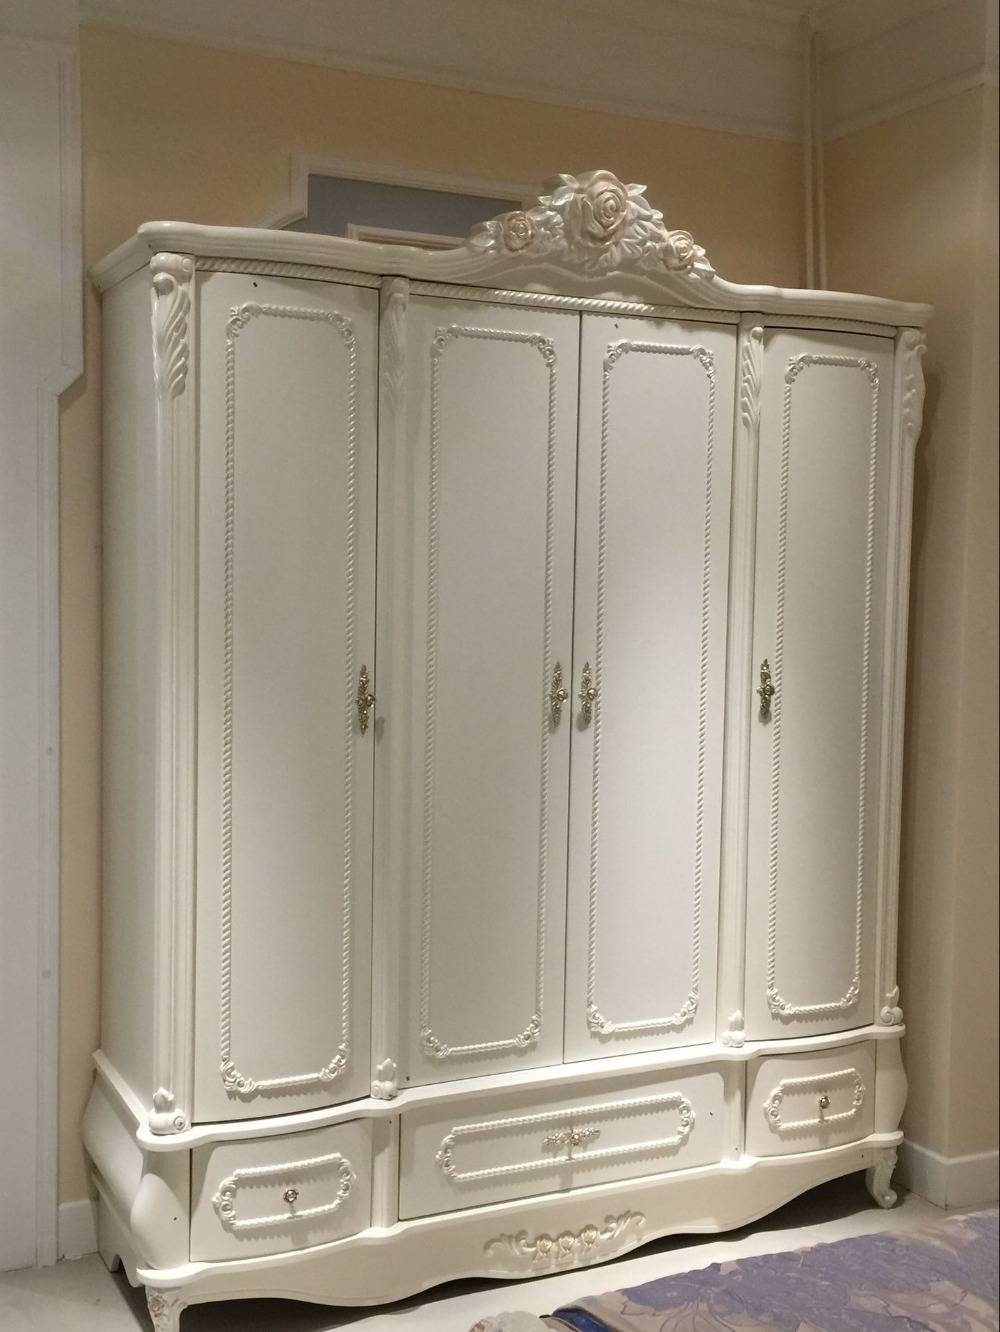 Compare Prices On Bedroom Wardrobe Cabinets Online Shopping/buy Regarding Low Cost Wardrobes (View 13 of 15)